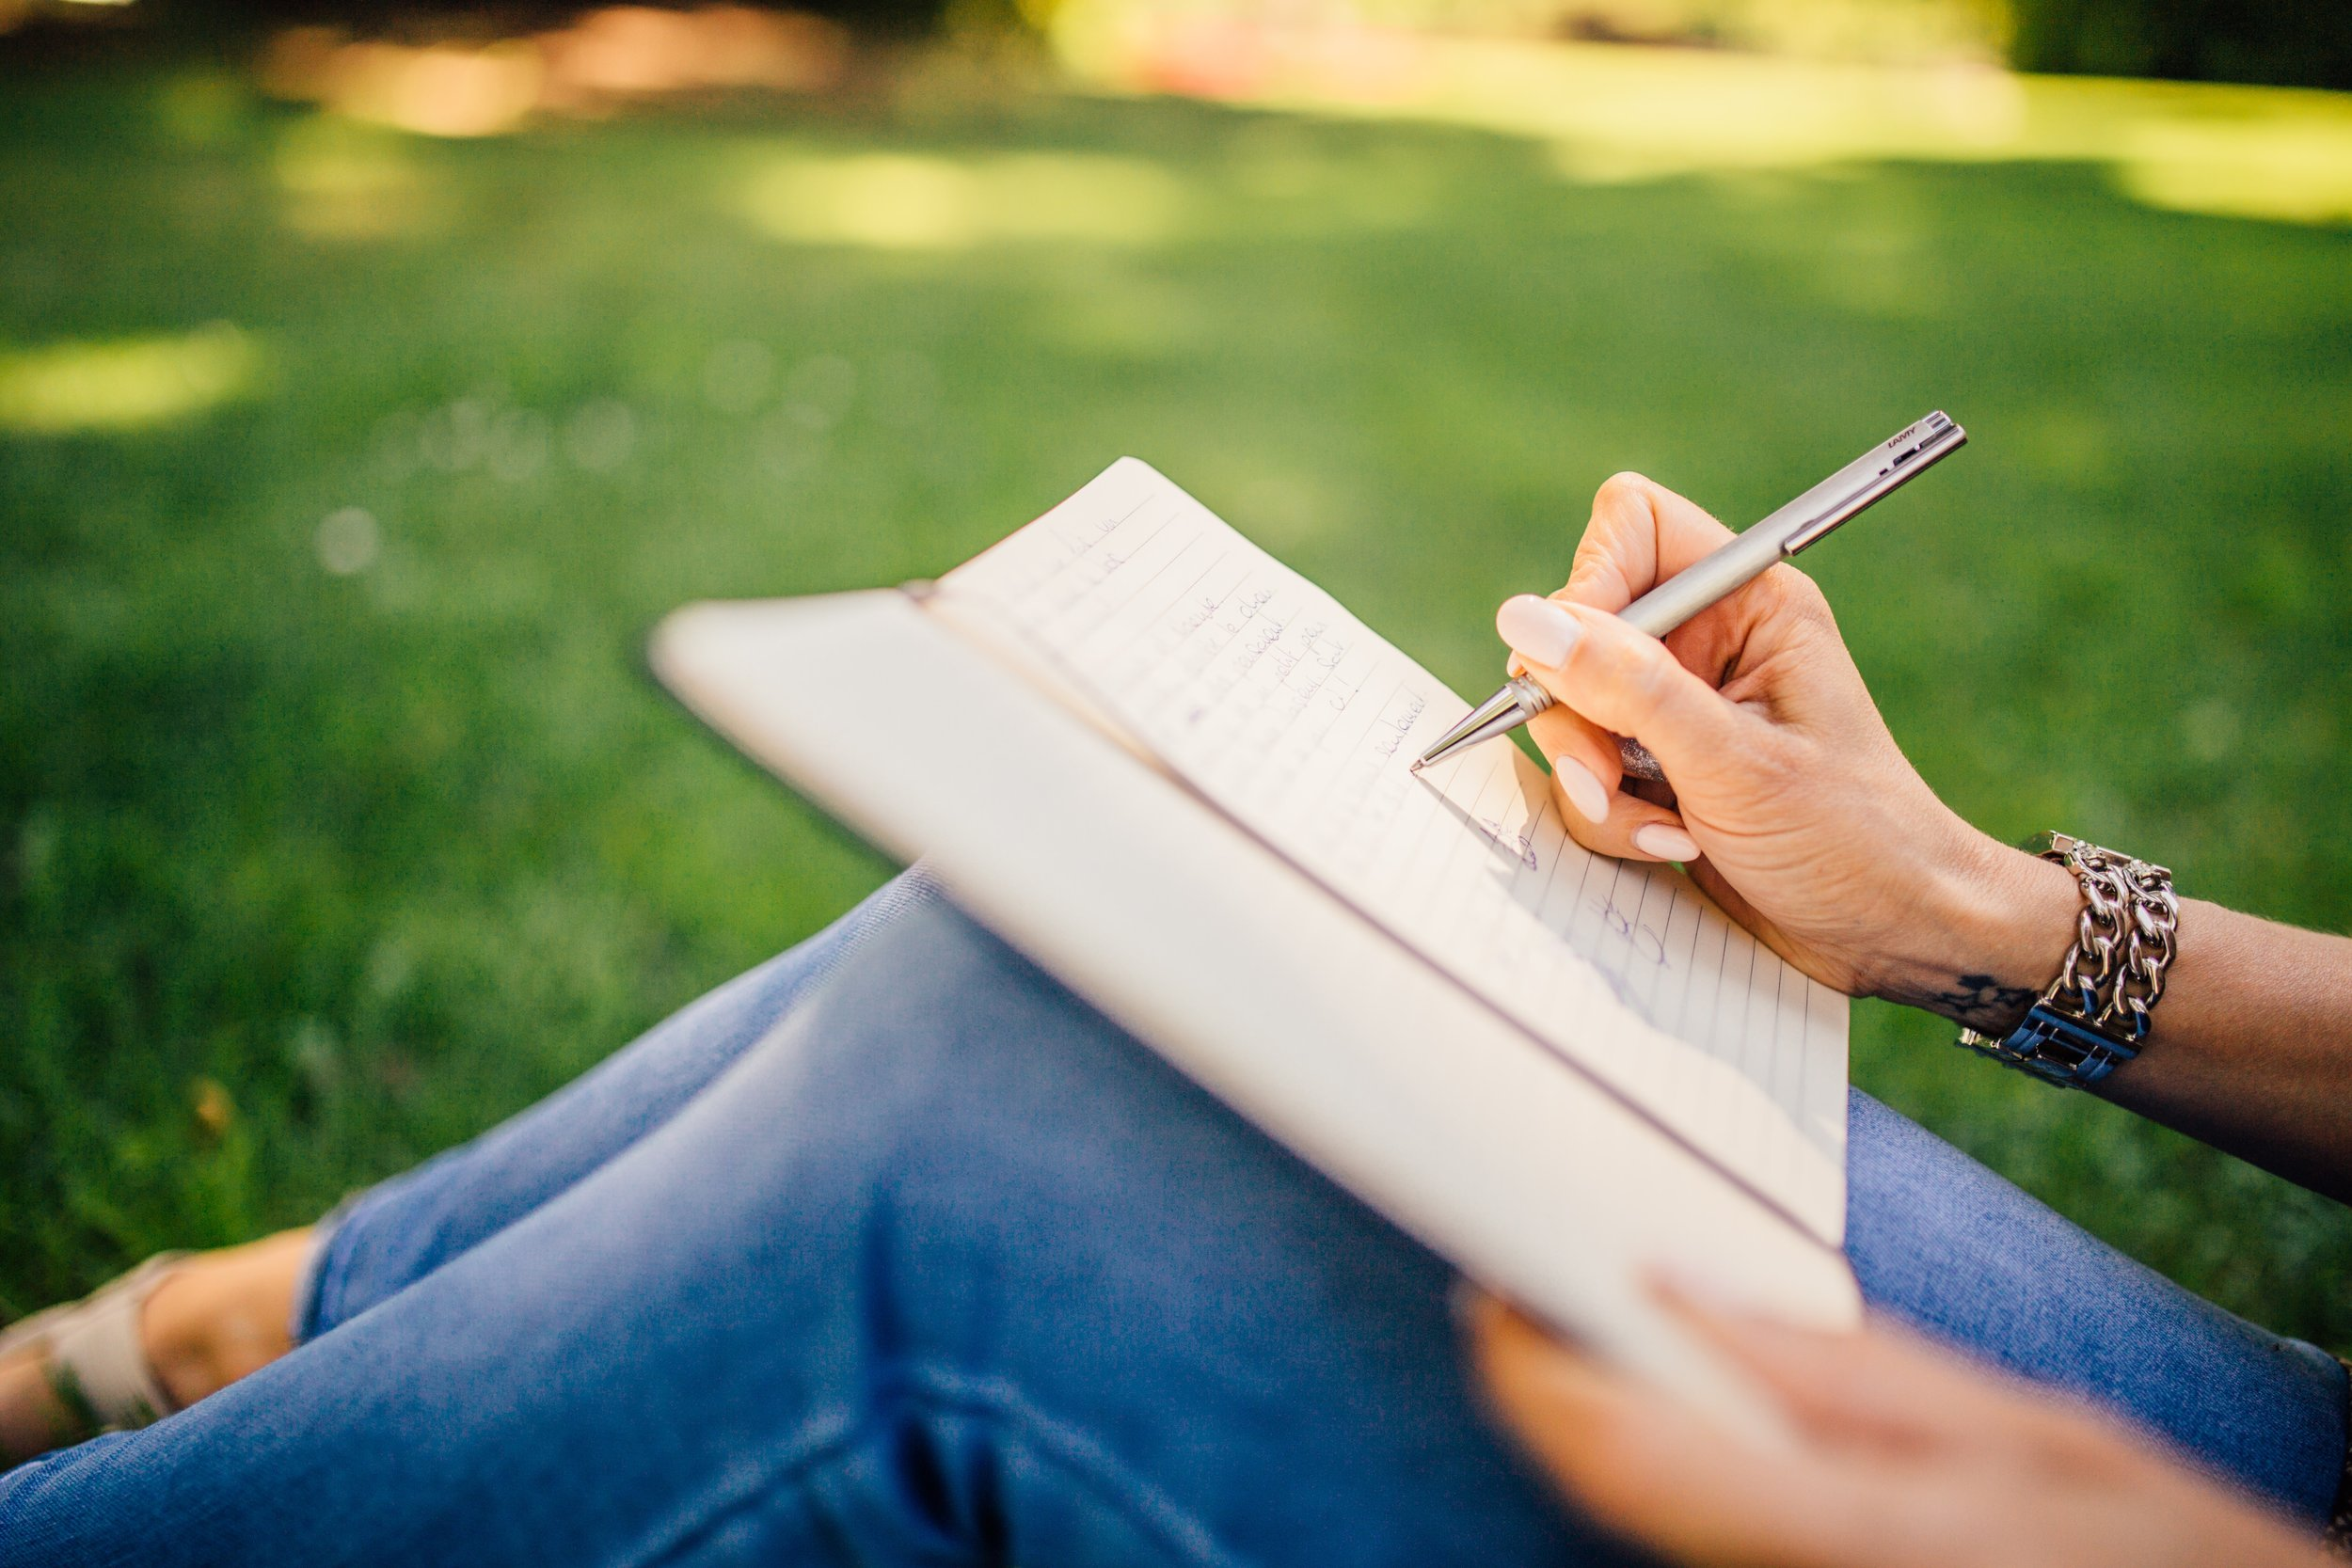 WRITING - A journal practice that will help you uncover how you have become the sexual being you are. This practice is great for illuminating what has shaped your sexuality, and bringing awareness to what may be holding you back sexually.